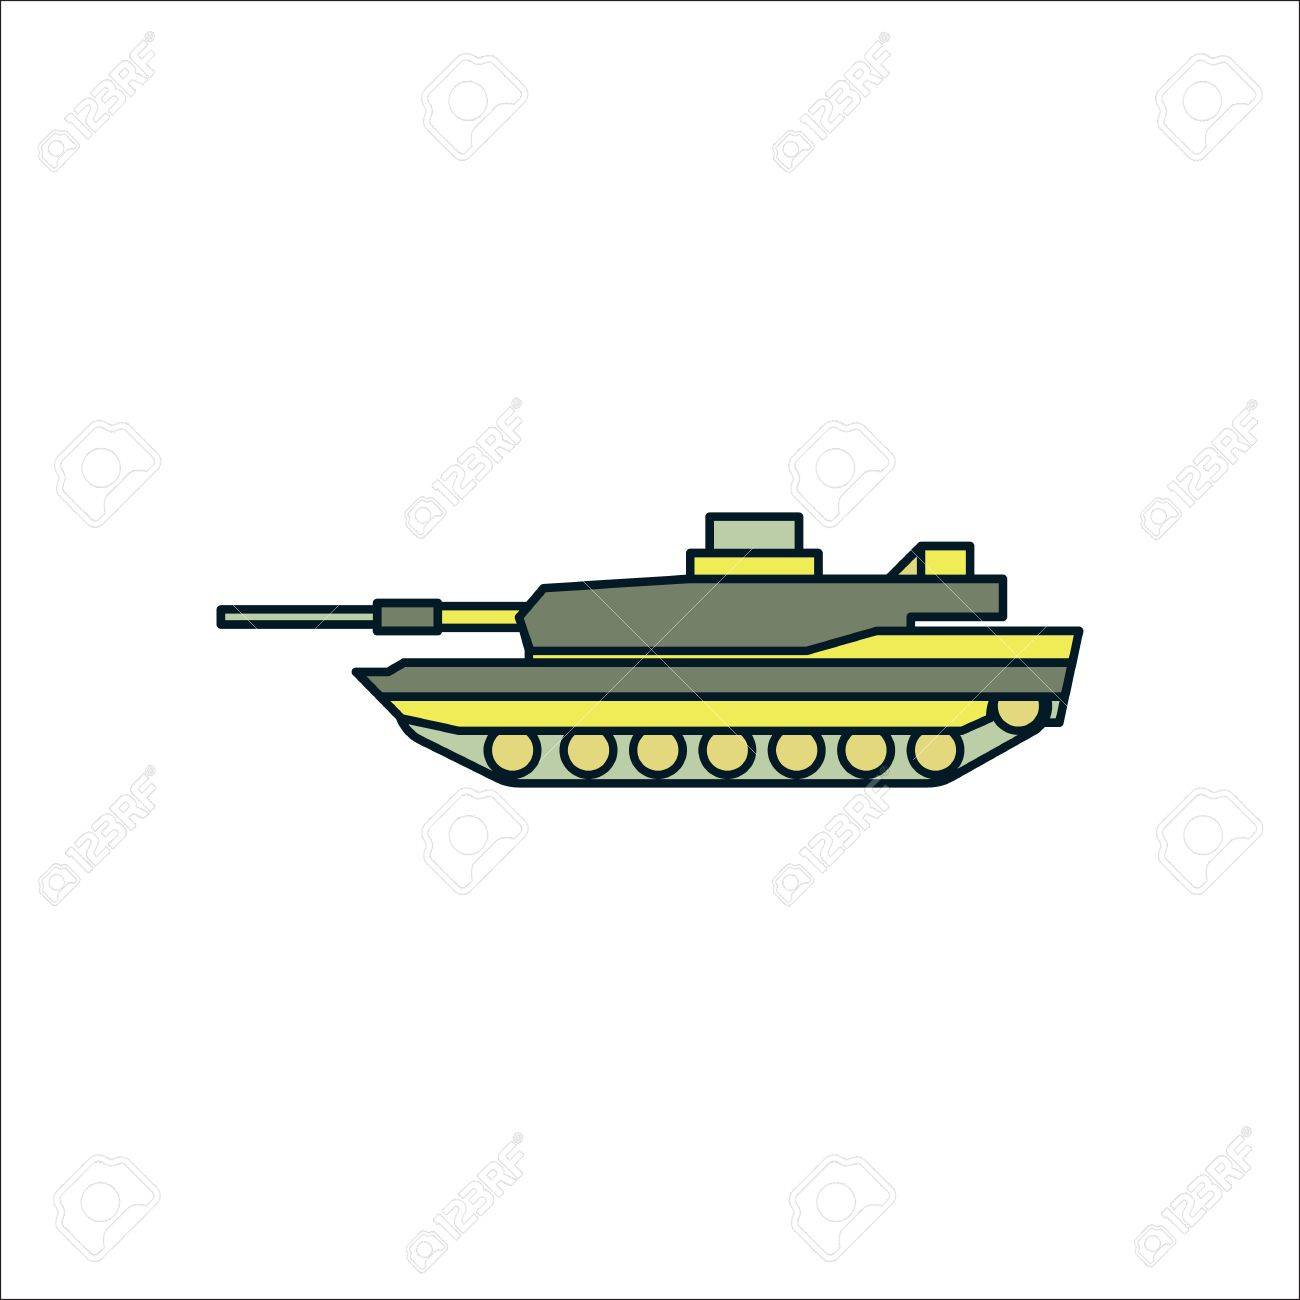 modern military tank symbol sign flat icon on background royalty free cliparts vectors and stock illustration image 63317926 modern military tank symbol sign flat icon on background